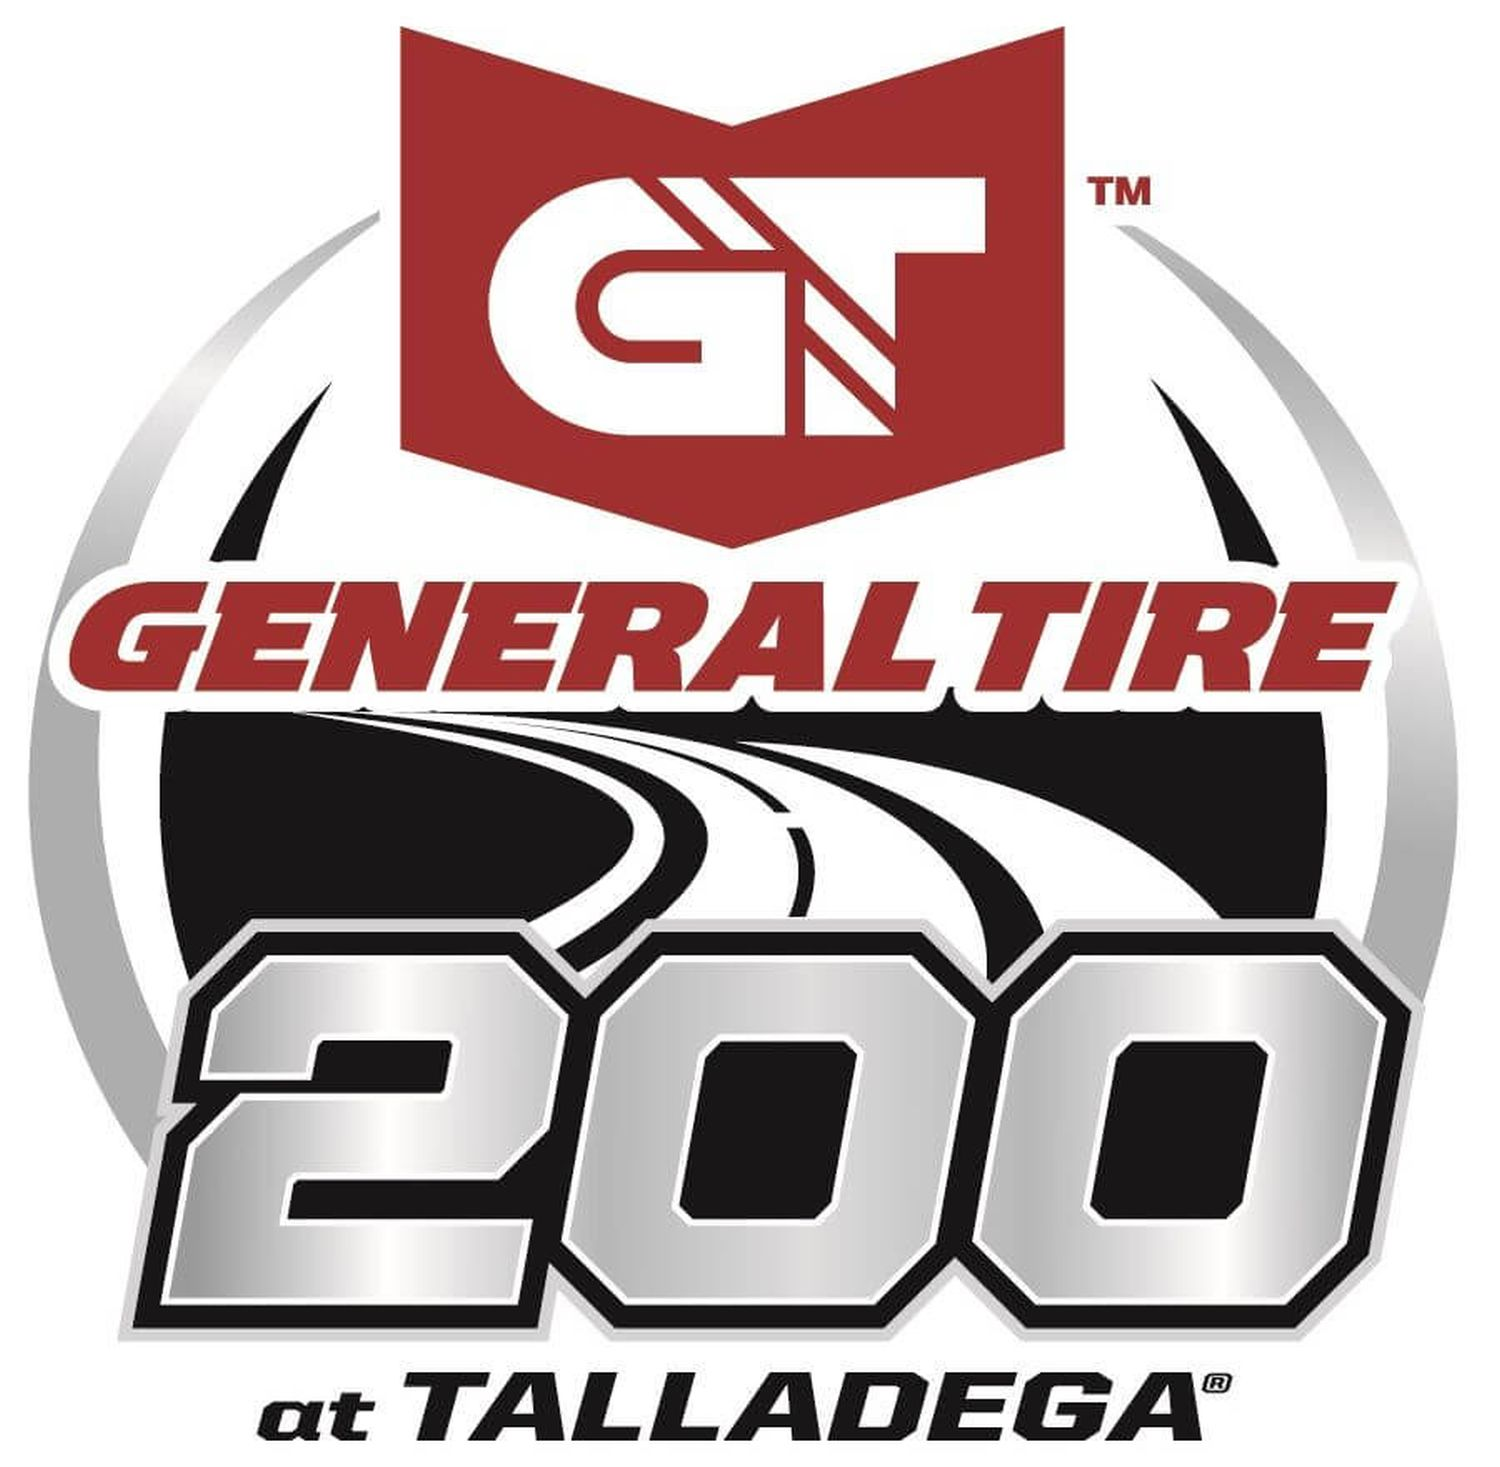 arca qualifying canceled at talladega general tire 200 field set by rh catchfence com general tire logo image continental general tire logo